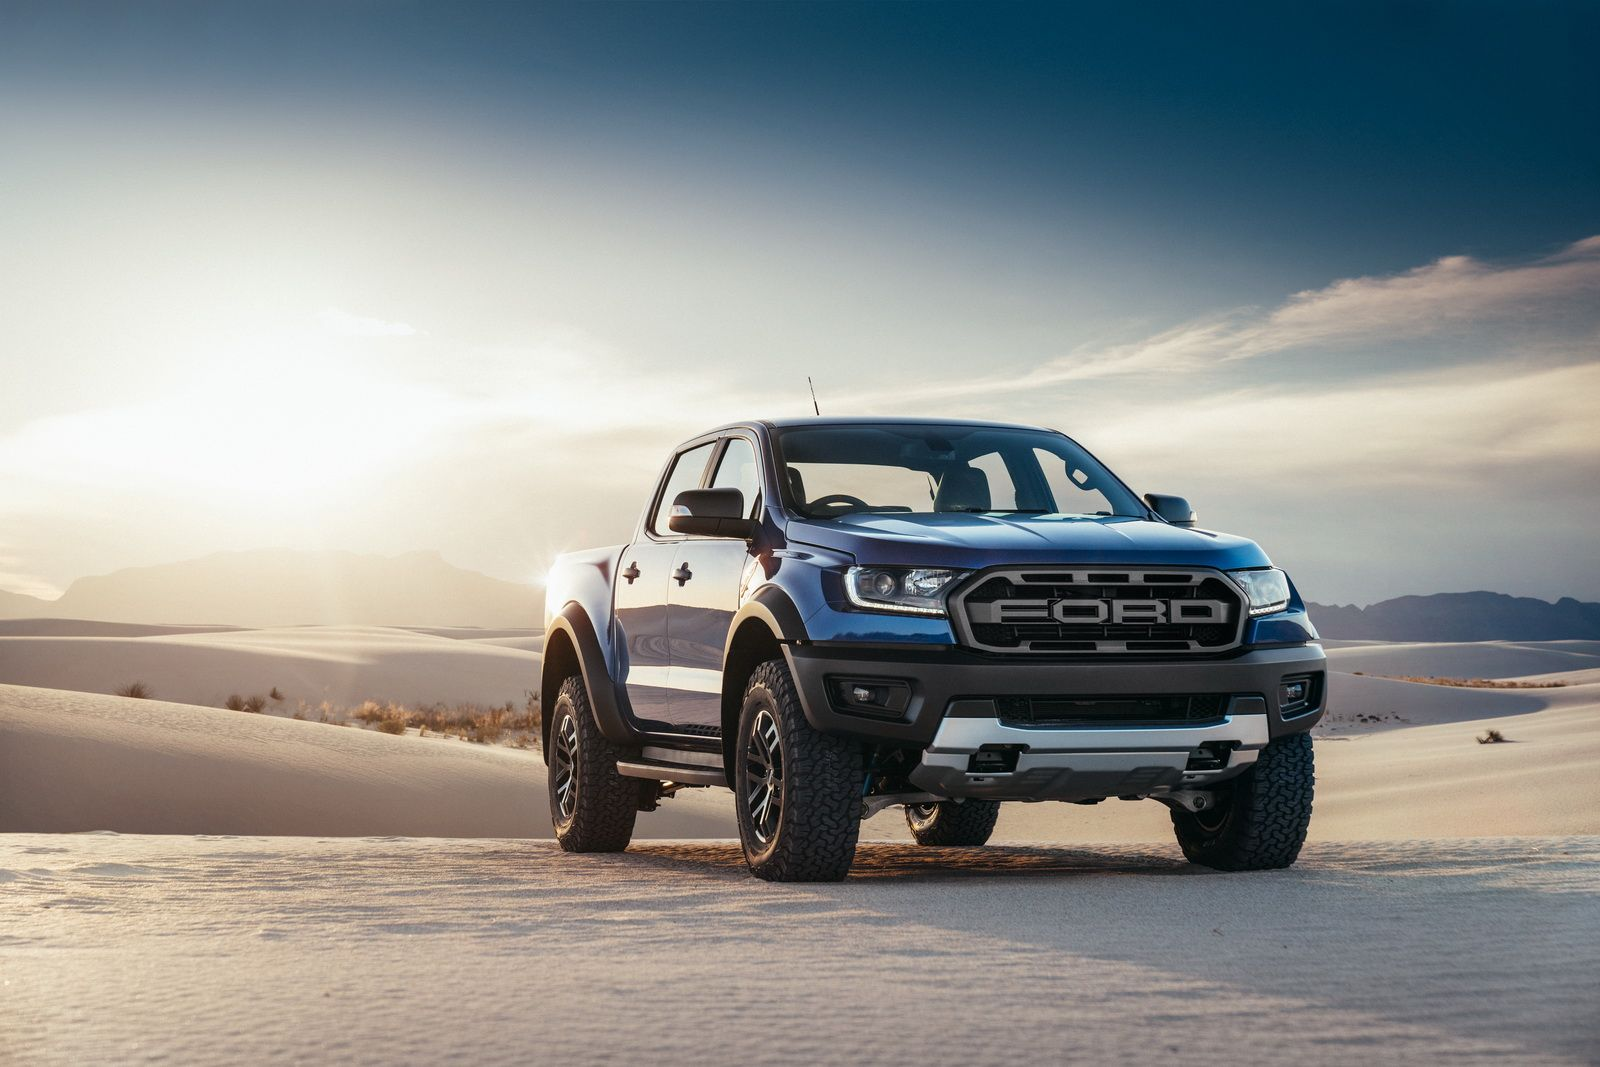 2019 Ford Ranger Raptor Revealed With 210hp Turbodiesel Power